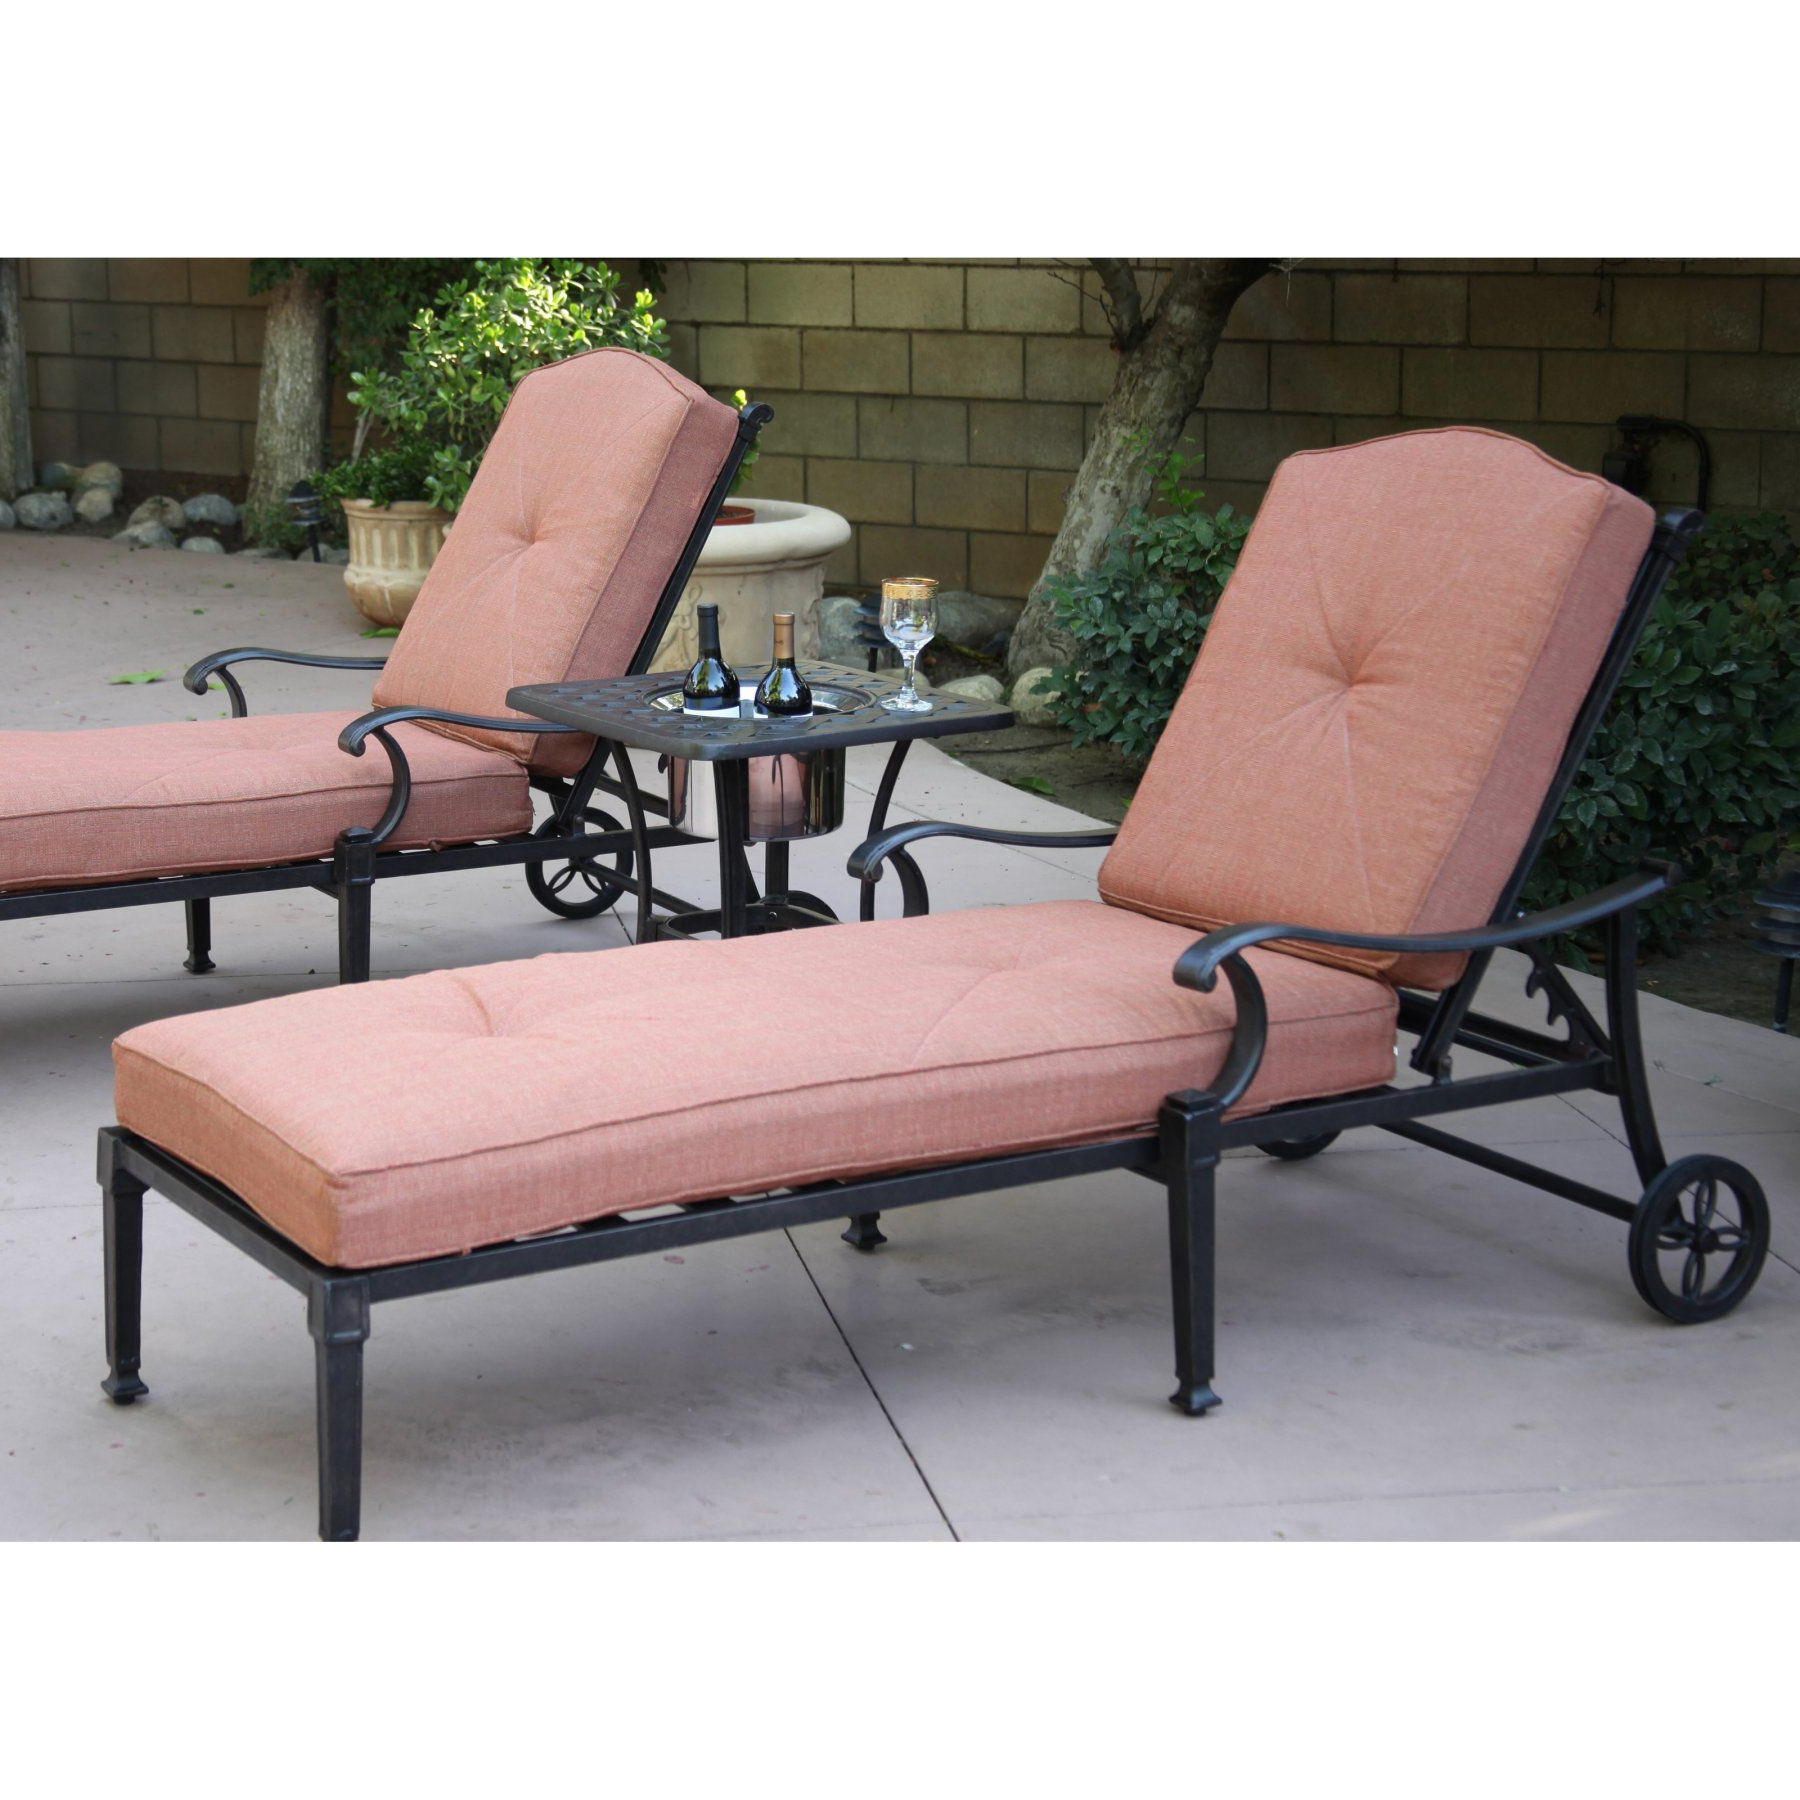 Well Liked Darlee Charleston Aluminum 3 Piece Patio Lounge Set – Dl1091 Regarding 3 Piece Patio Lounger Sets (Gallery 24 of 25)